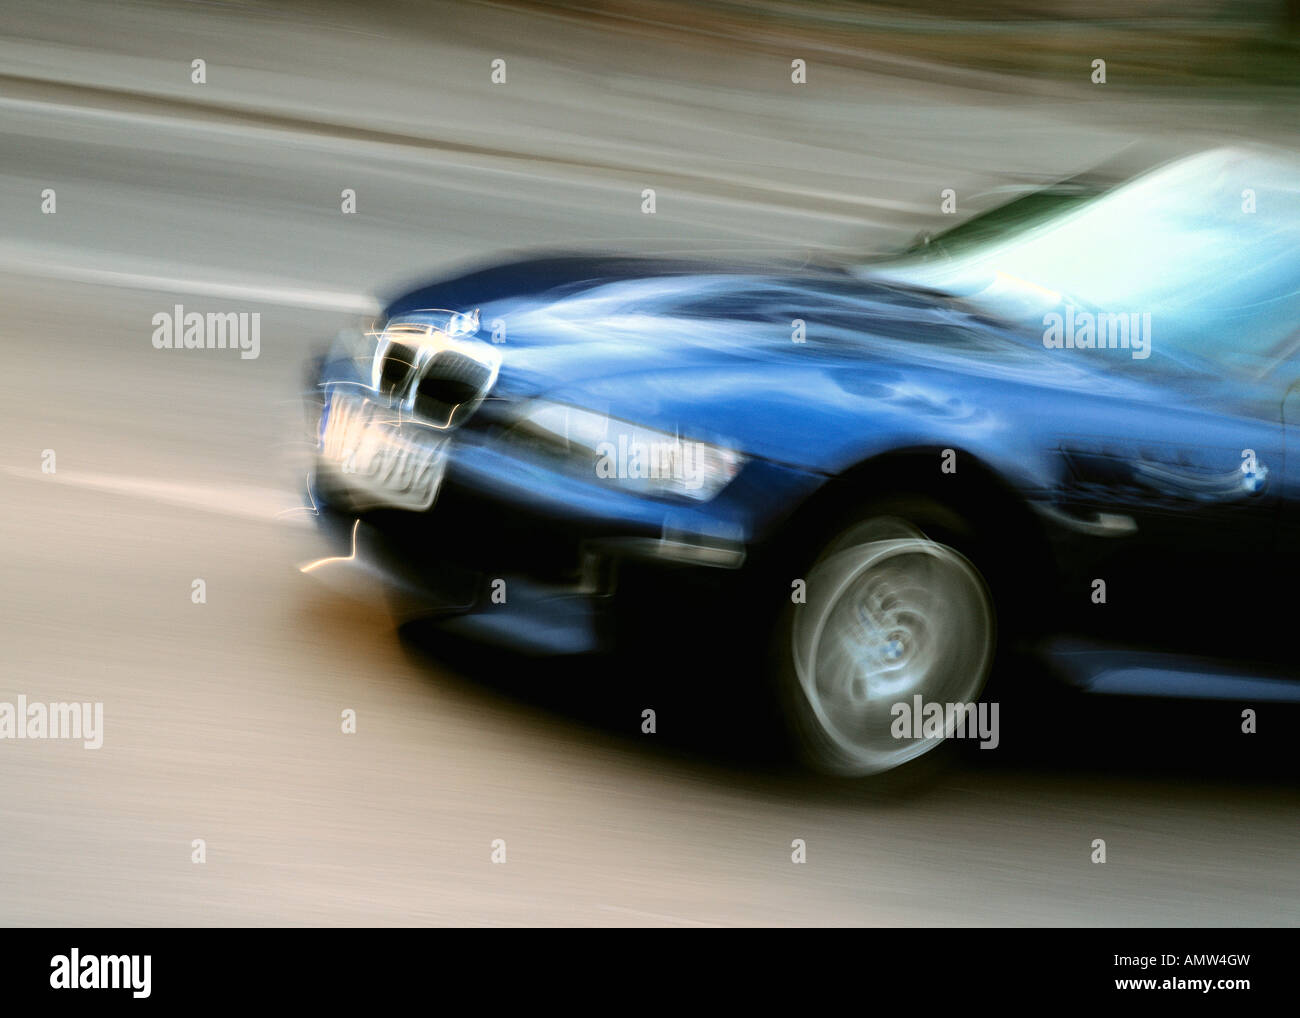 Driving BMW - Stock Image